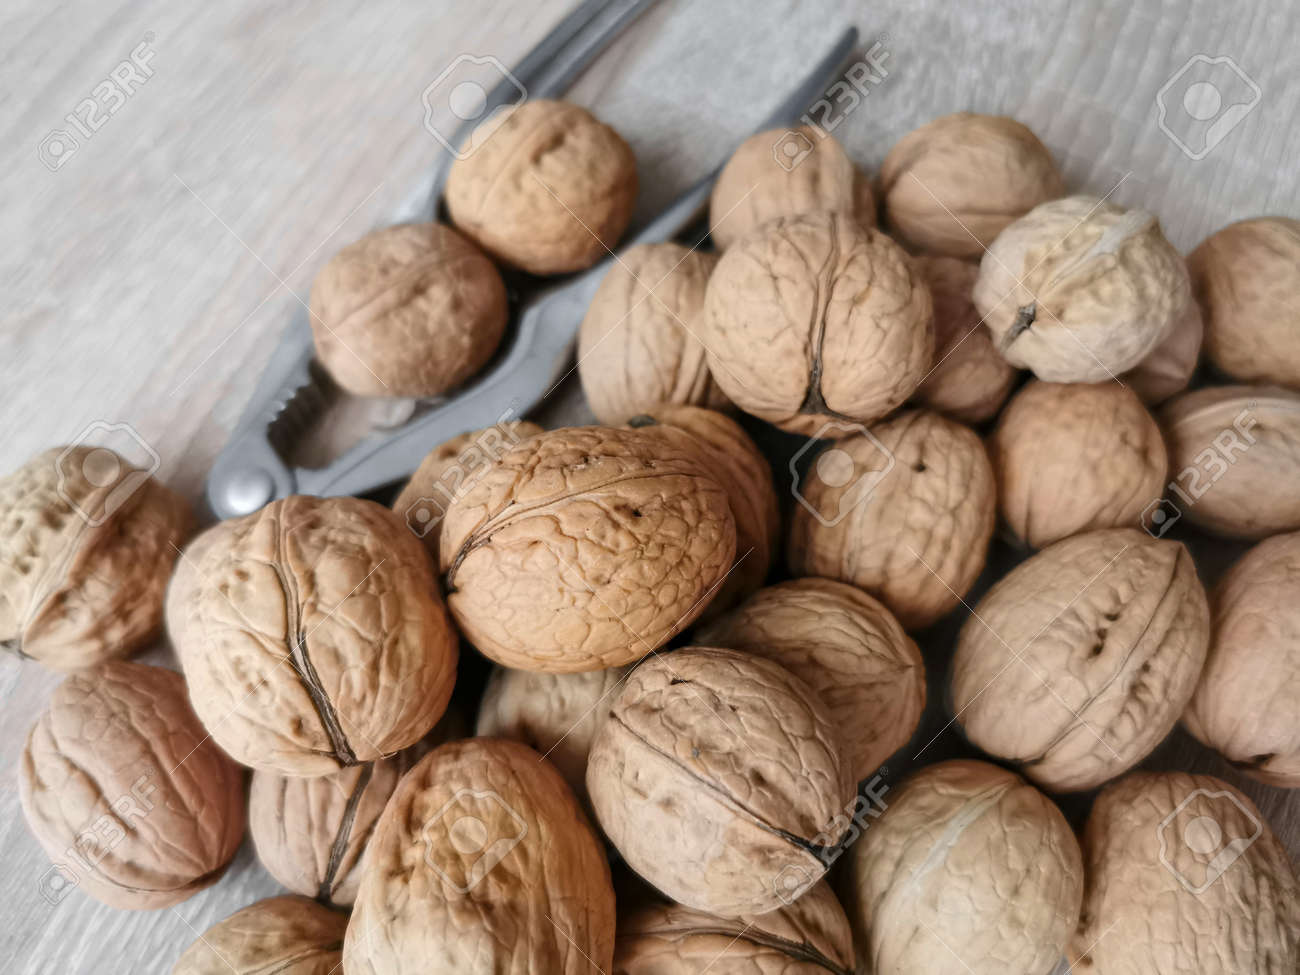 Whole walnuts and nutcracker on a wooden table - 160739272